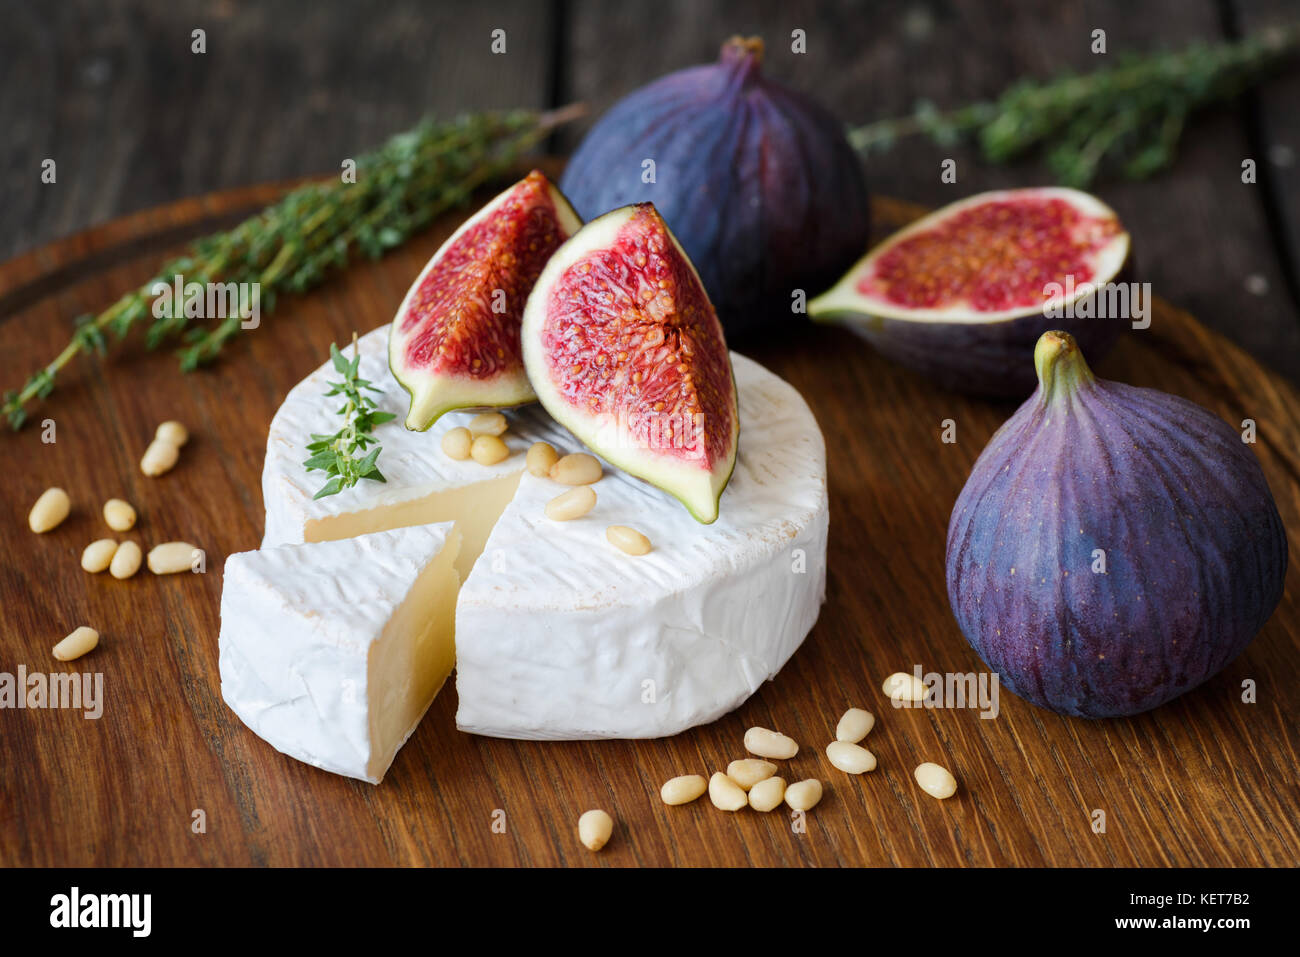 Camembert cheese with fresh purple figs, thyme and pine nuts on cutting board - Stock Image